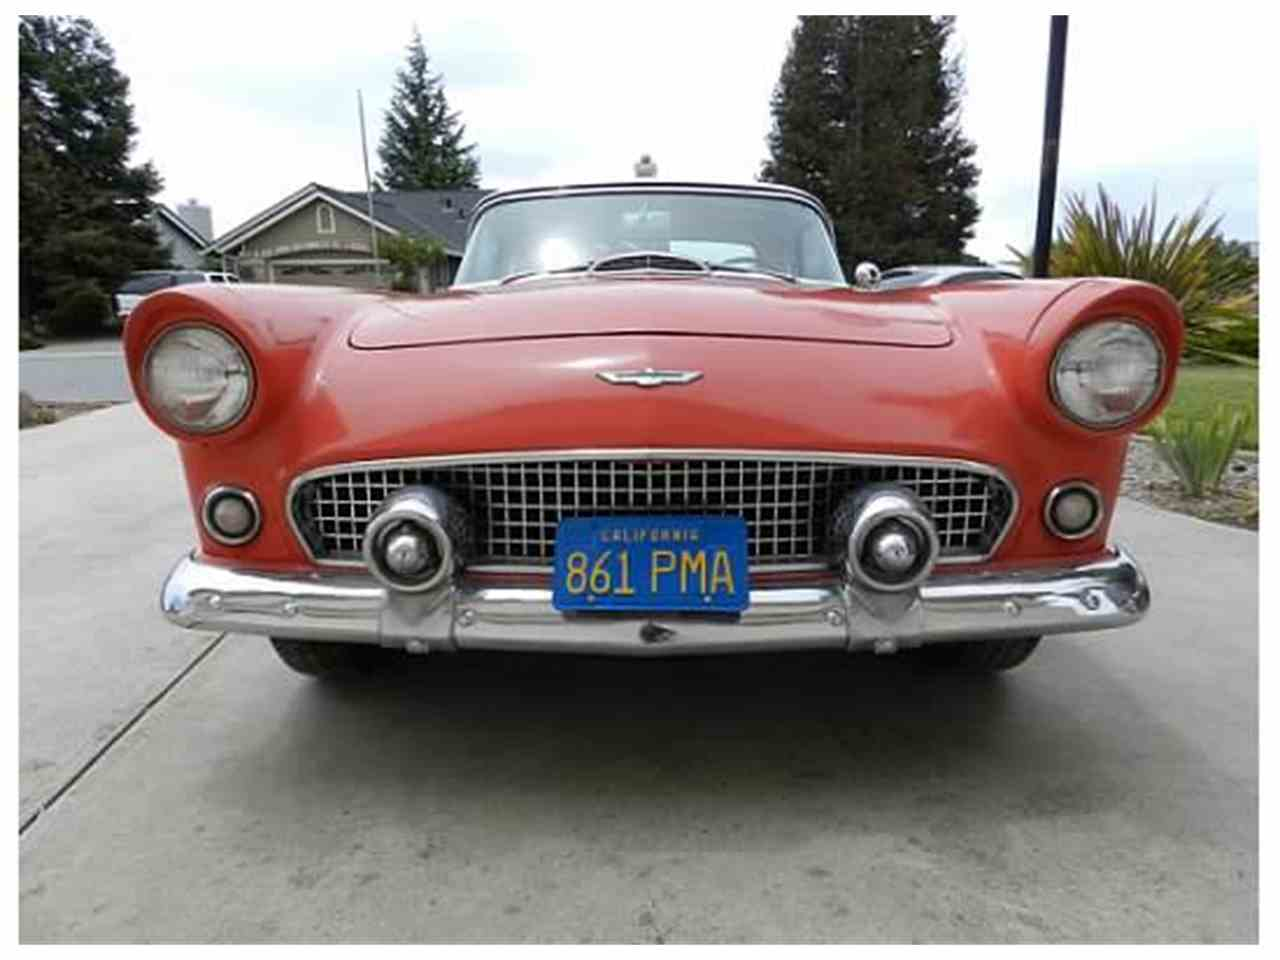 Large Picture of Classic 1956 Ford Thunderbird - $39,800.00 - C1JY